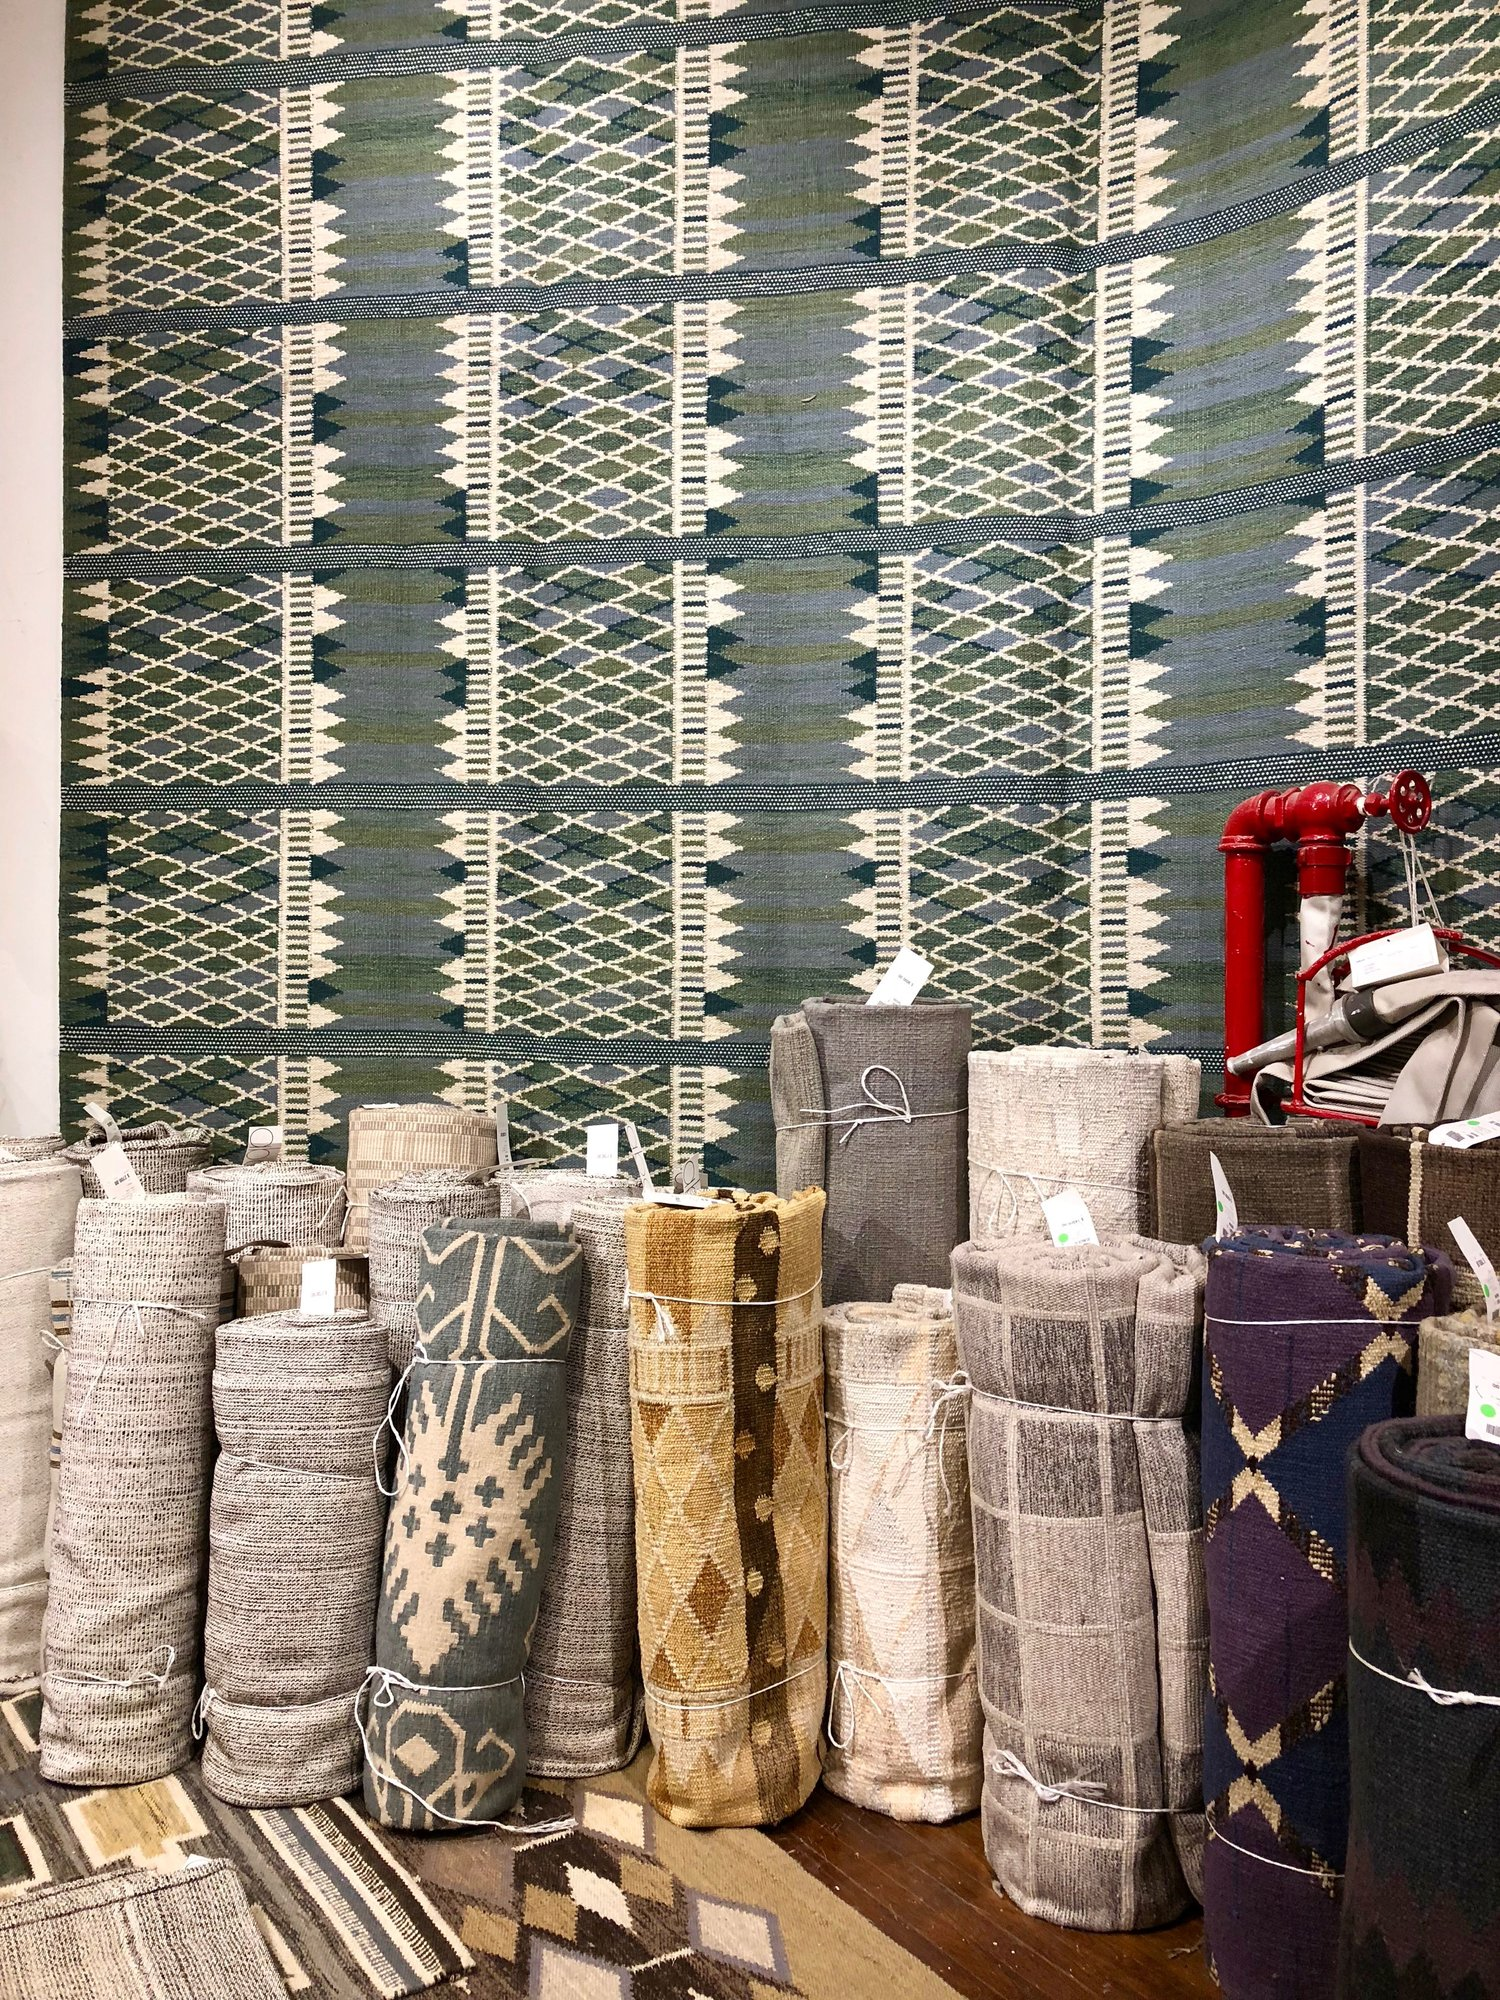 If only my suitcase was bigger -- desperately wanted to adopt all these one-of-a-kind rugs.